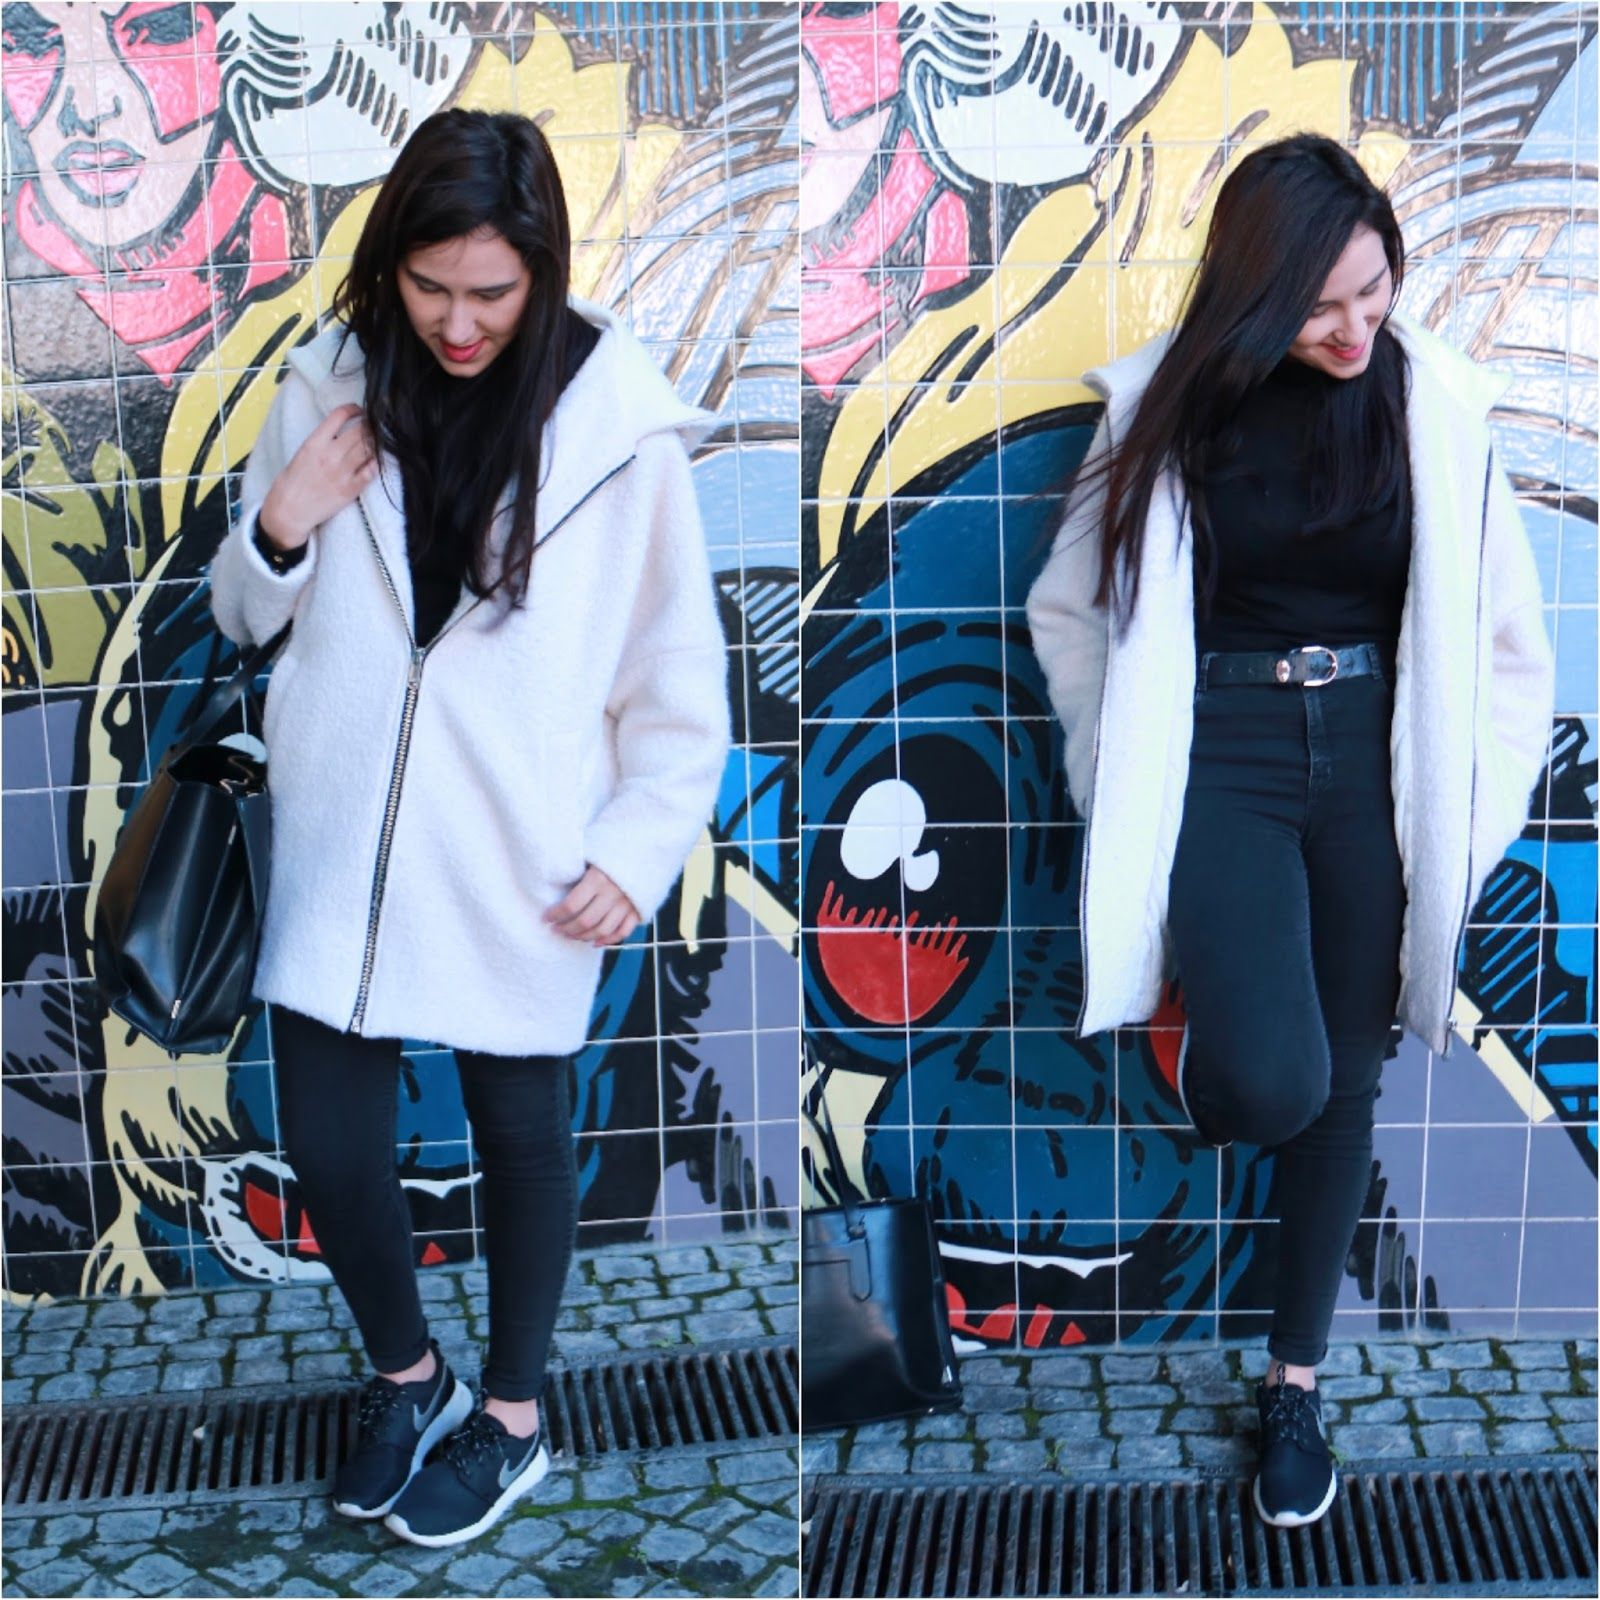 A-B-BEAUTY: Comic Outfit